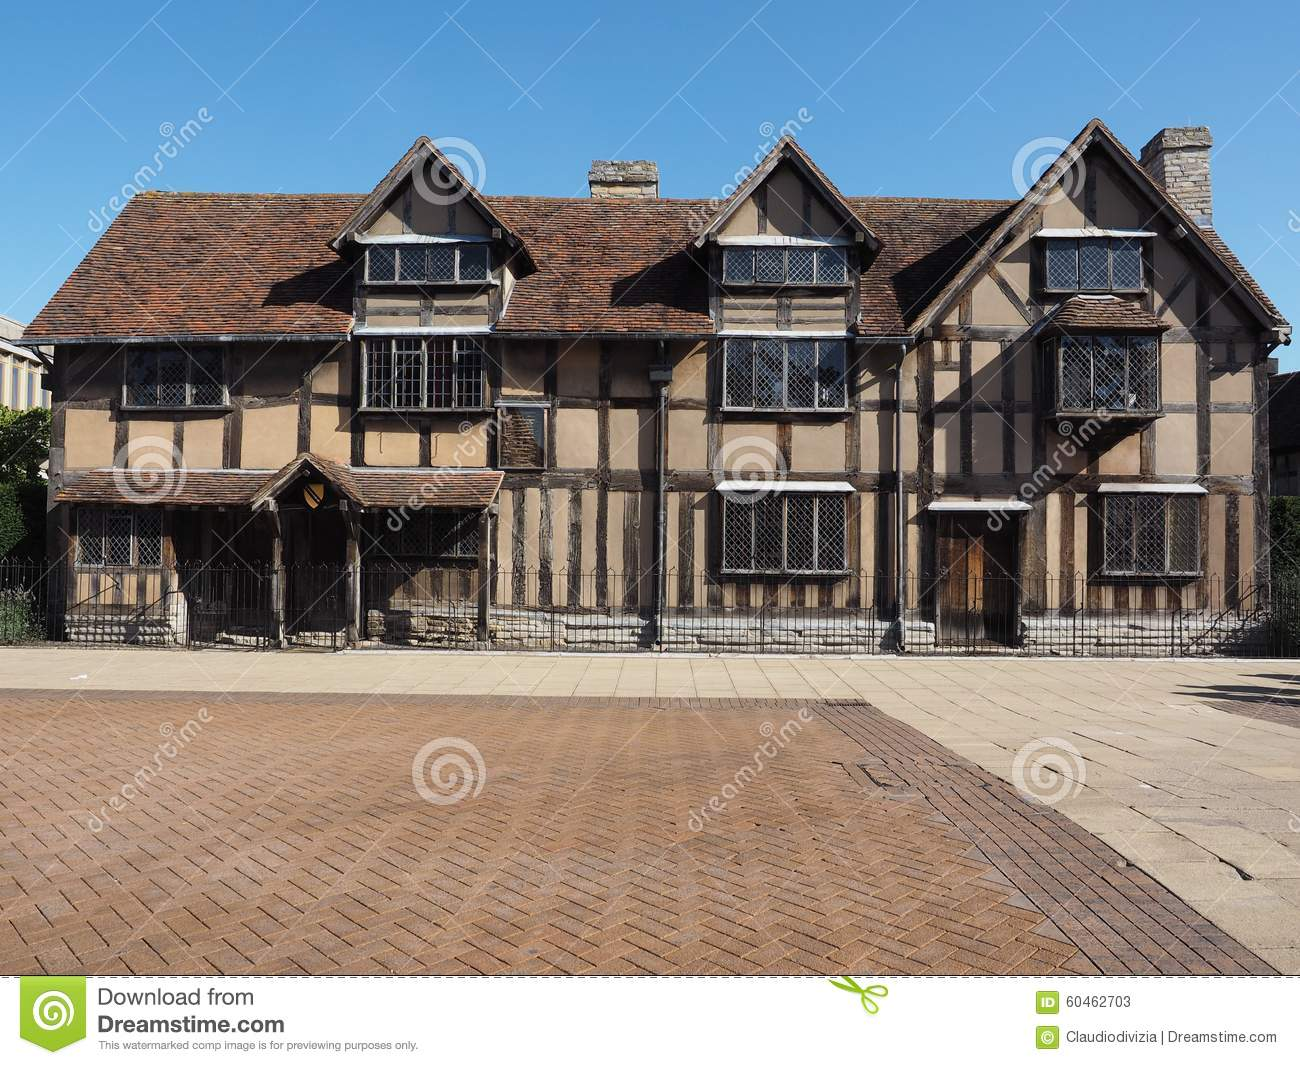 Shakespeare Birthplace In Stratford Upon Avon